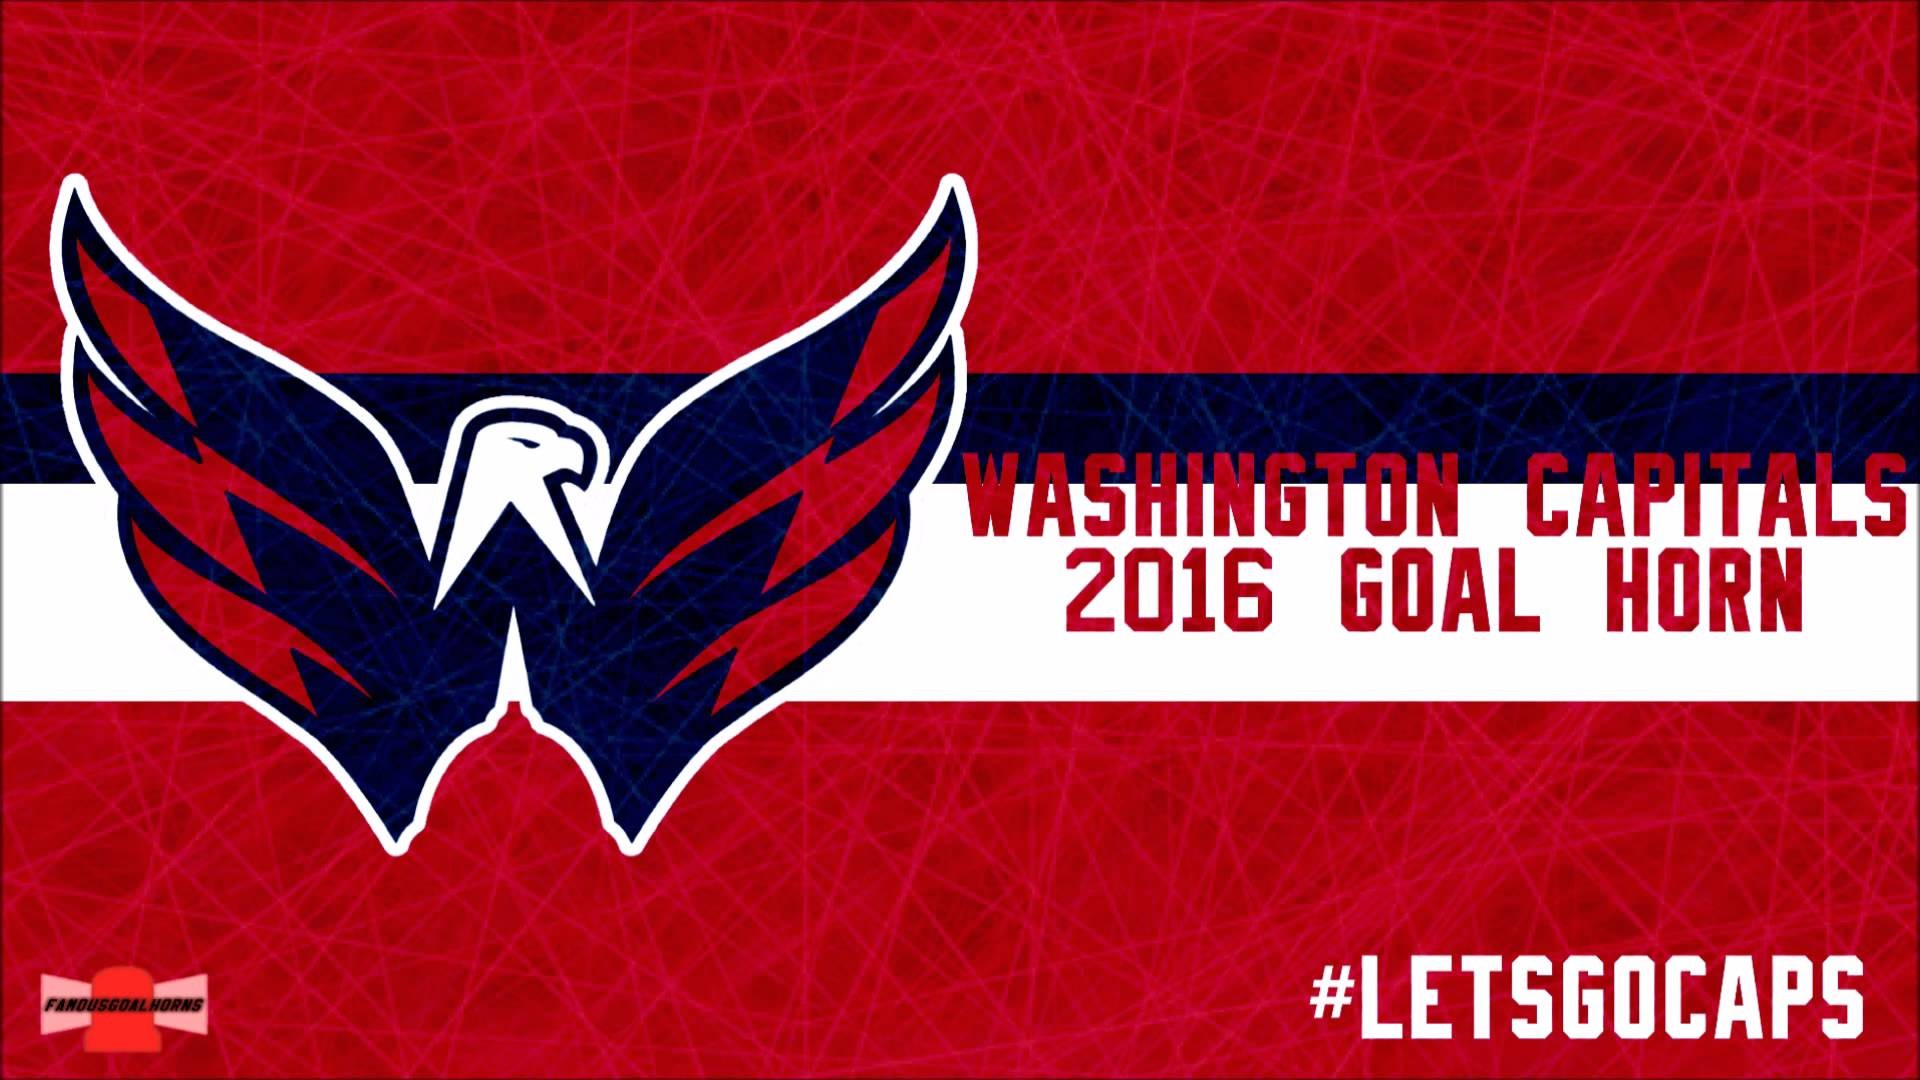 Washington Capitals 2016 Goal Horn (OUTDATED)